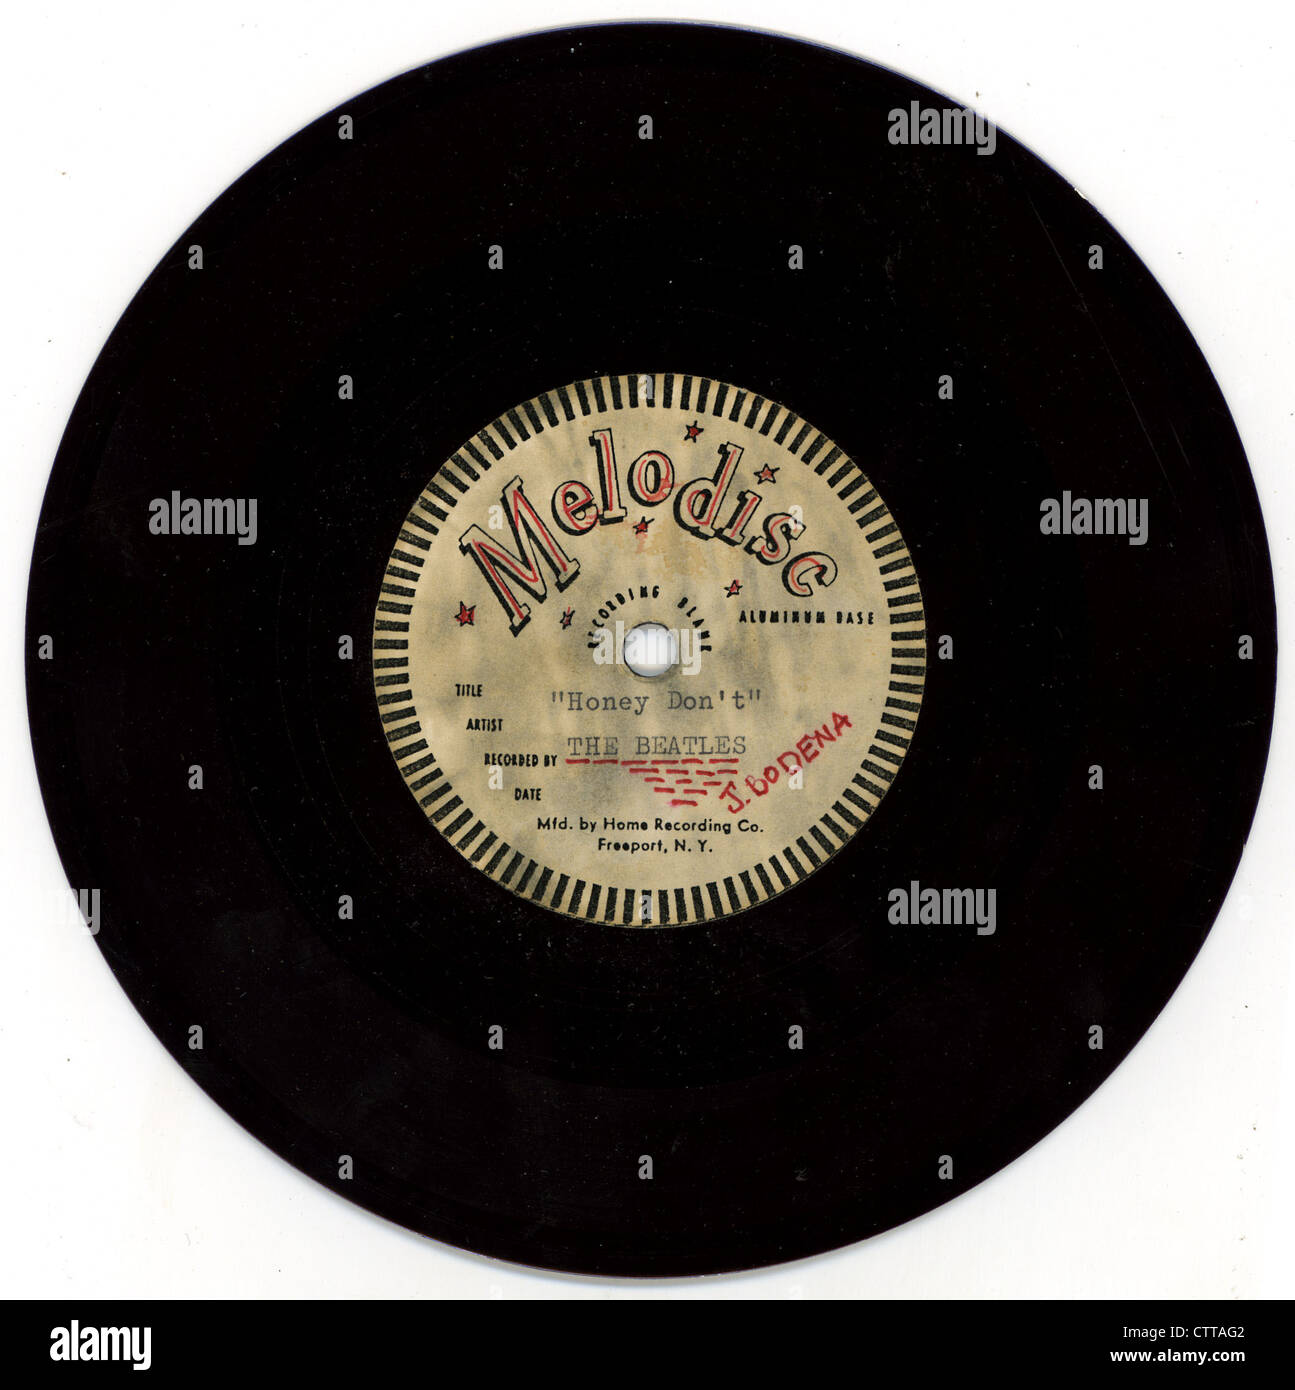 000908 - The Beatles 1964 Melodisc Record for Honey Don't - Stock Image